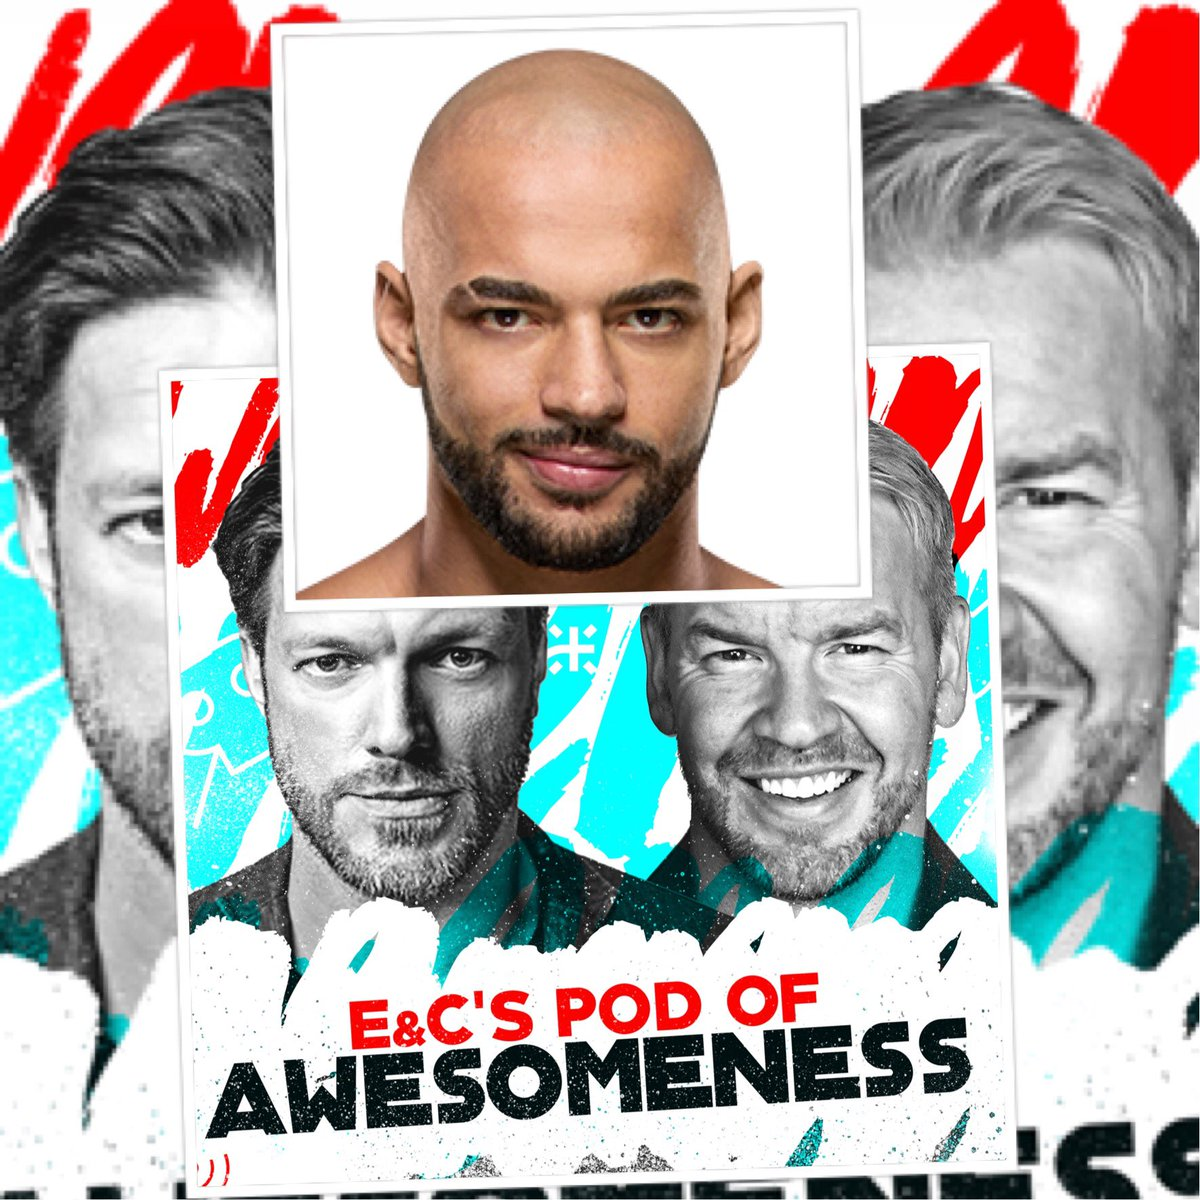 Now on @EandCPod it's @KingRicochet we talk about when he realized wrestling could be his career and how he's just scratching the surface of his potential + Tooommaaay @THETOMMYDREAMER with tales.. and Flip Sunset returns itunes.apple.com/us/podcast/e-c…